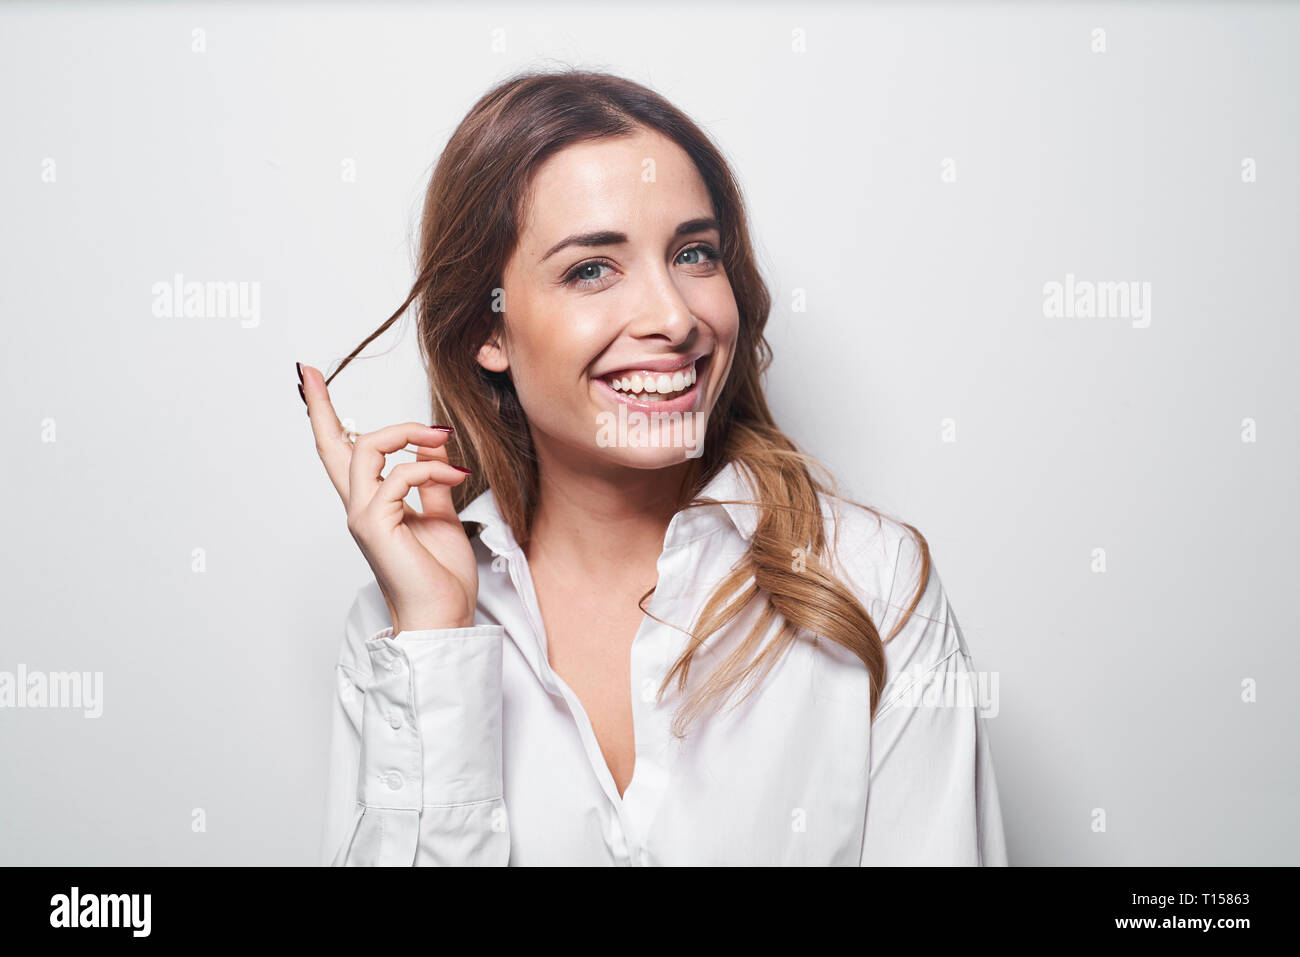 Portrait of laughing young woman twirling strand of hair - Stock Image